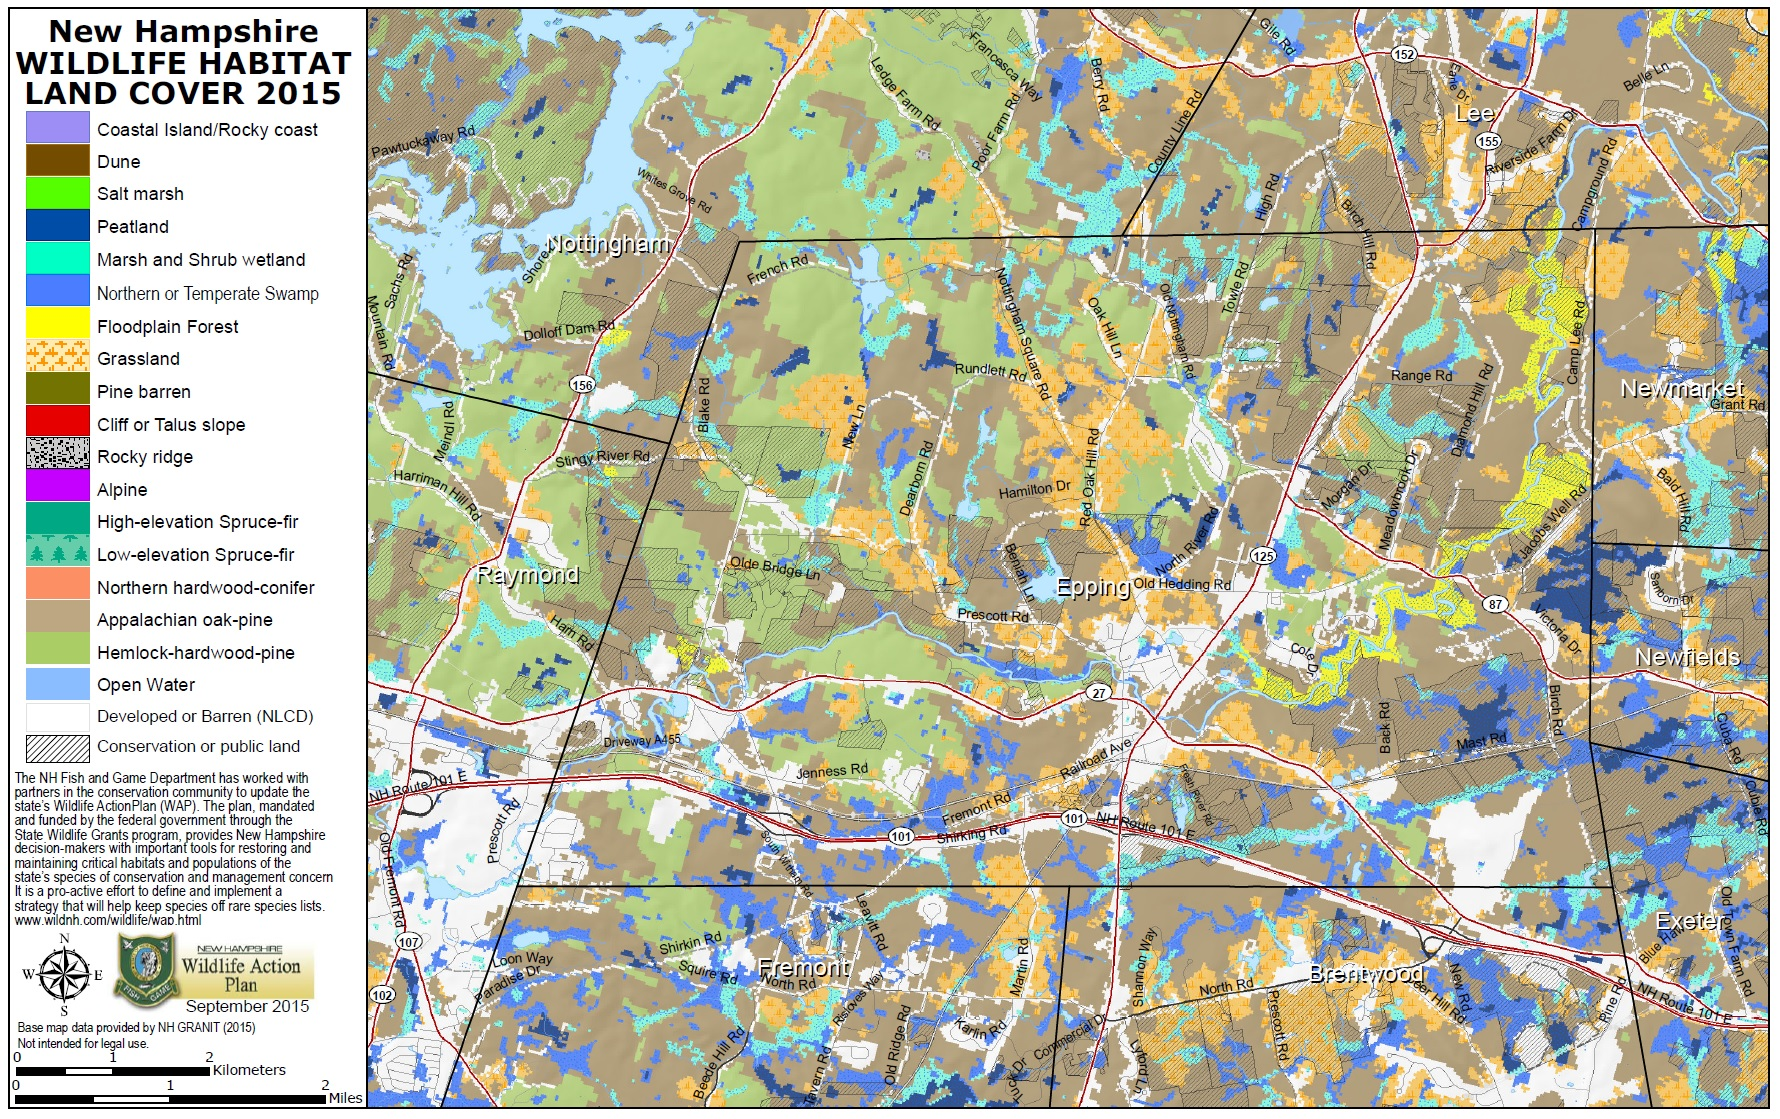 NH Wildlife Action Plan and Habitat Maps   Wildlife   New ... on map of riverwood, map of bottineau, map of penshurst, map of zeeland, map of sanbornton, map of turtle lake, map of essex, map of west melbourne, map of boscawen, map of fort totten, map of high beach, map of kearns, map of ray, map of woolloomooloo, map of nashua, map of north ryde, map of lindfield, map of mount sunapee, map of braddock, map of portsmouth,